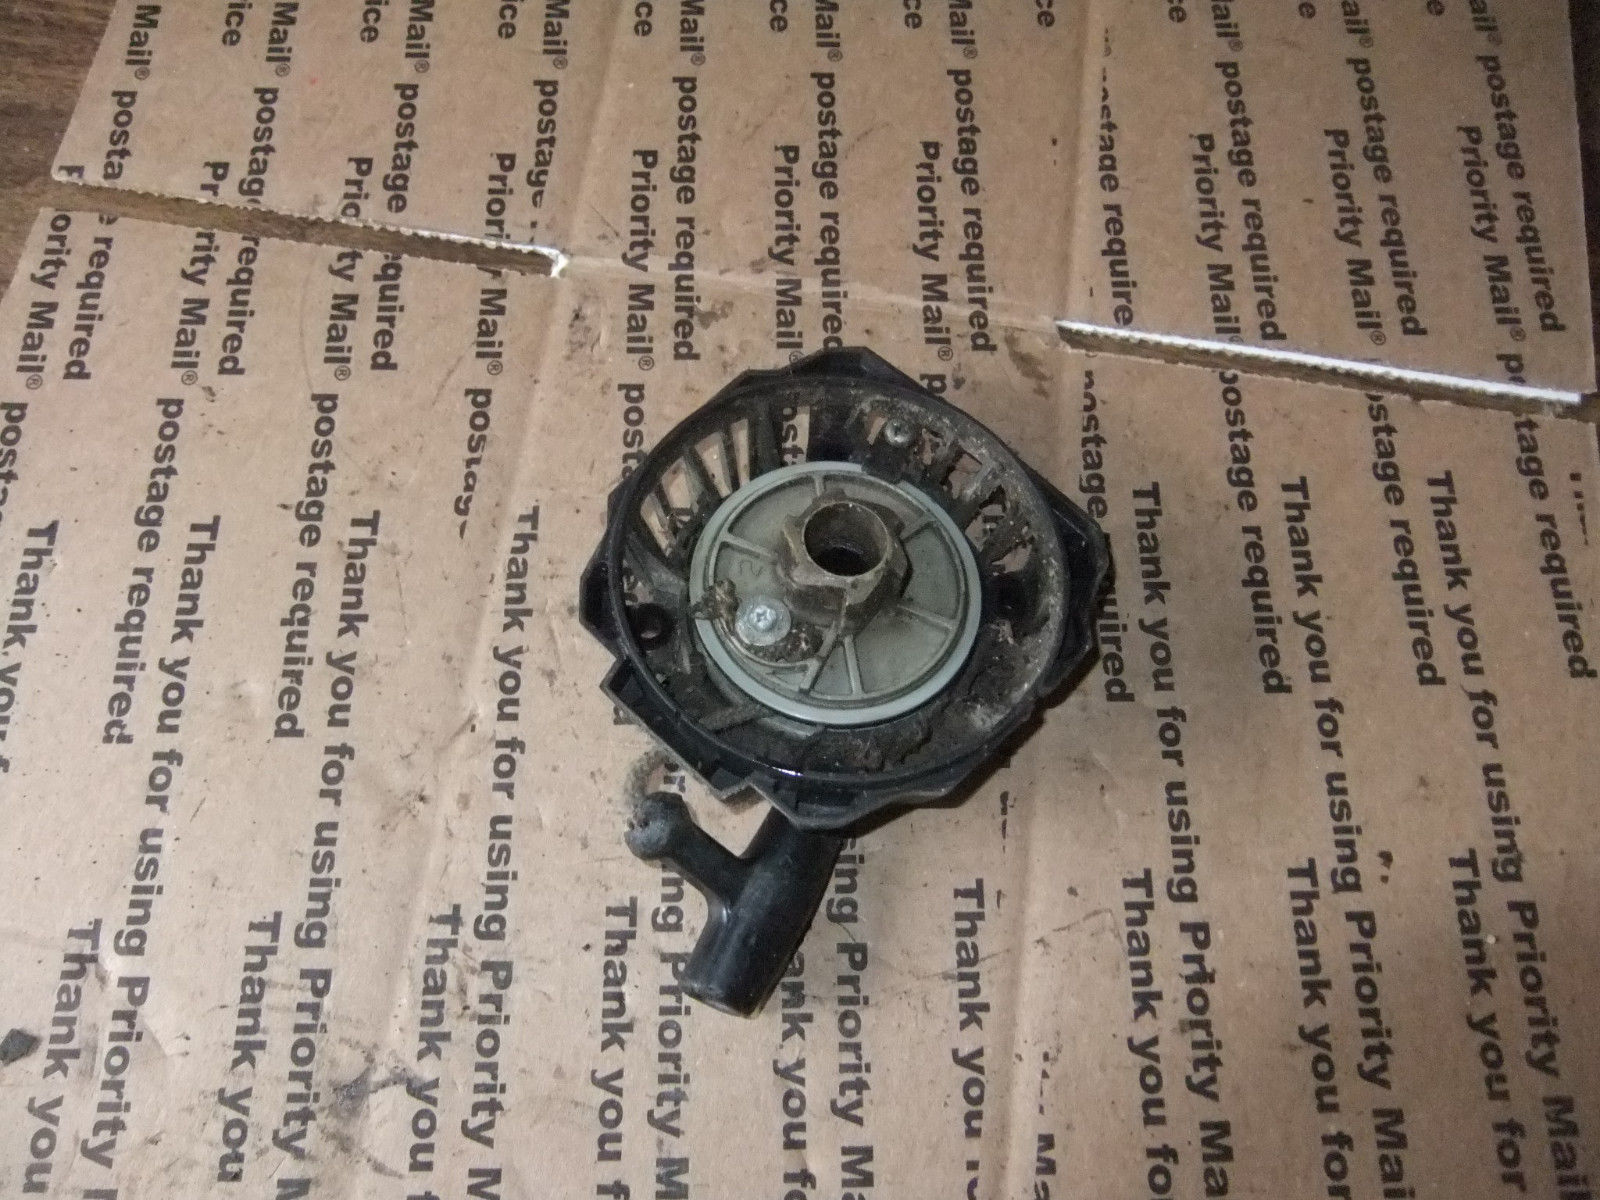 Craftsman String Trimmer 358.797270 32 CC Recoil Assembly